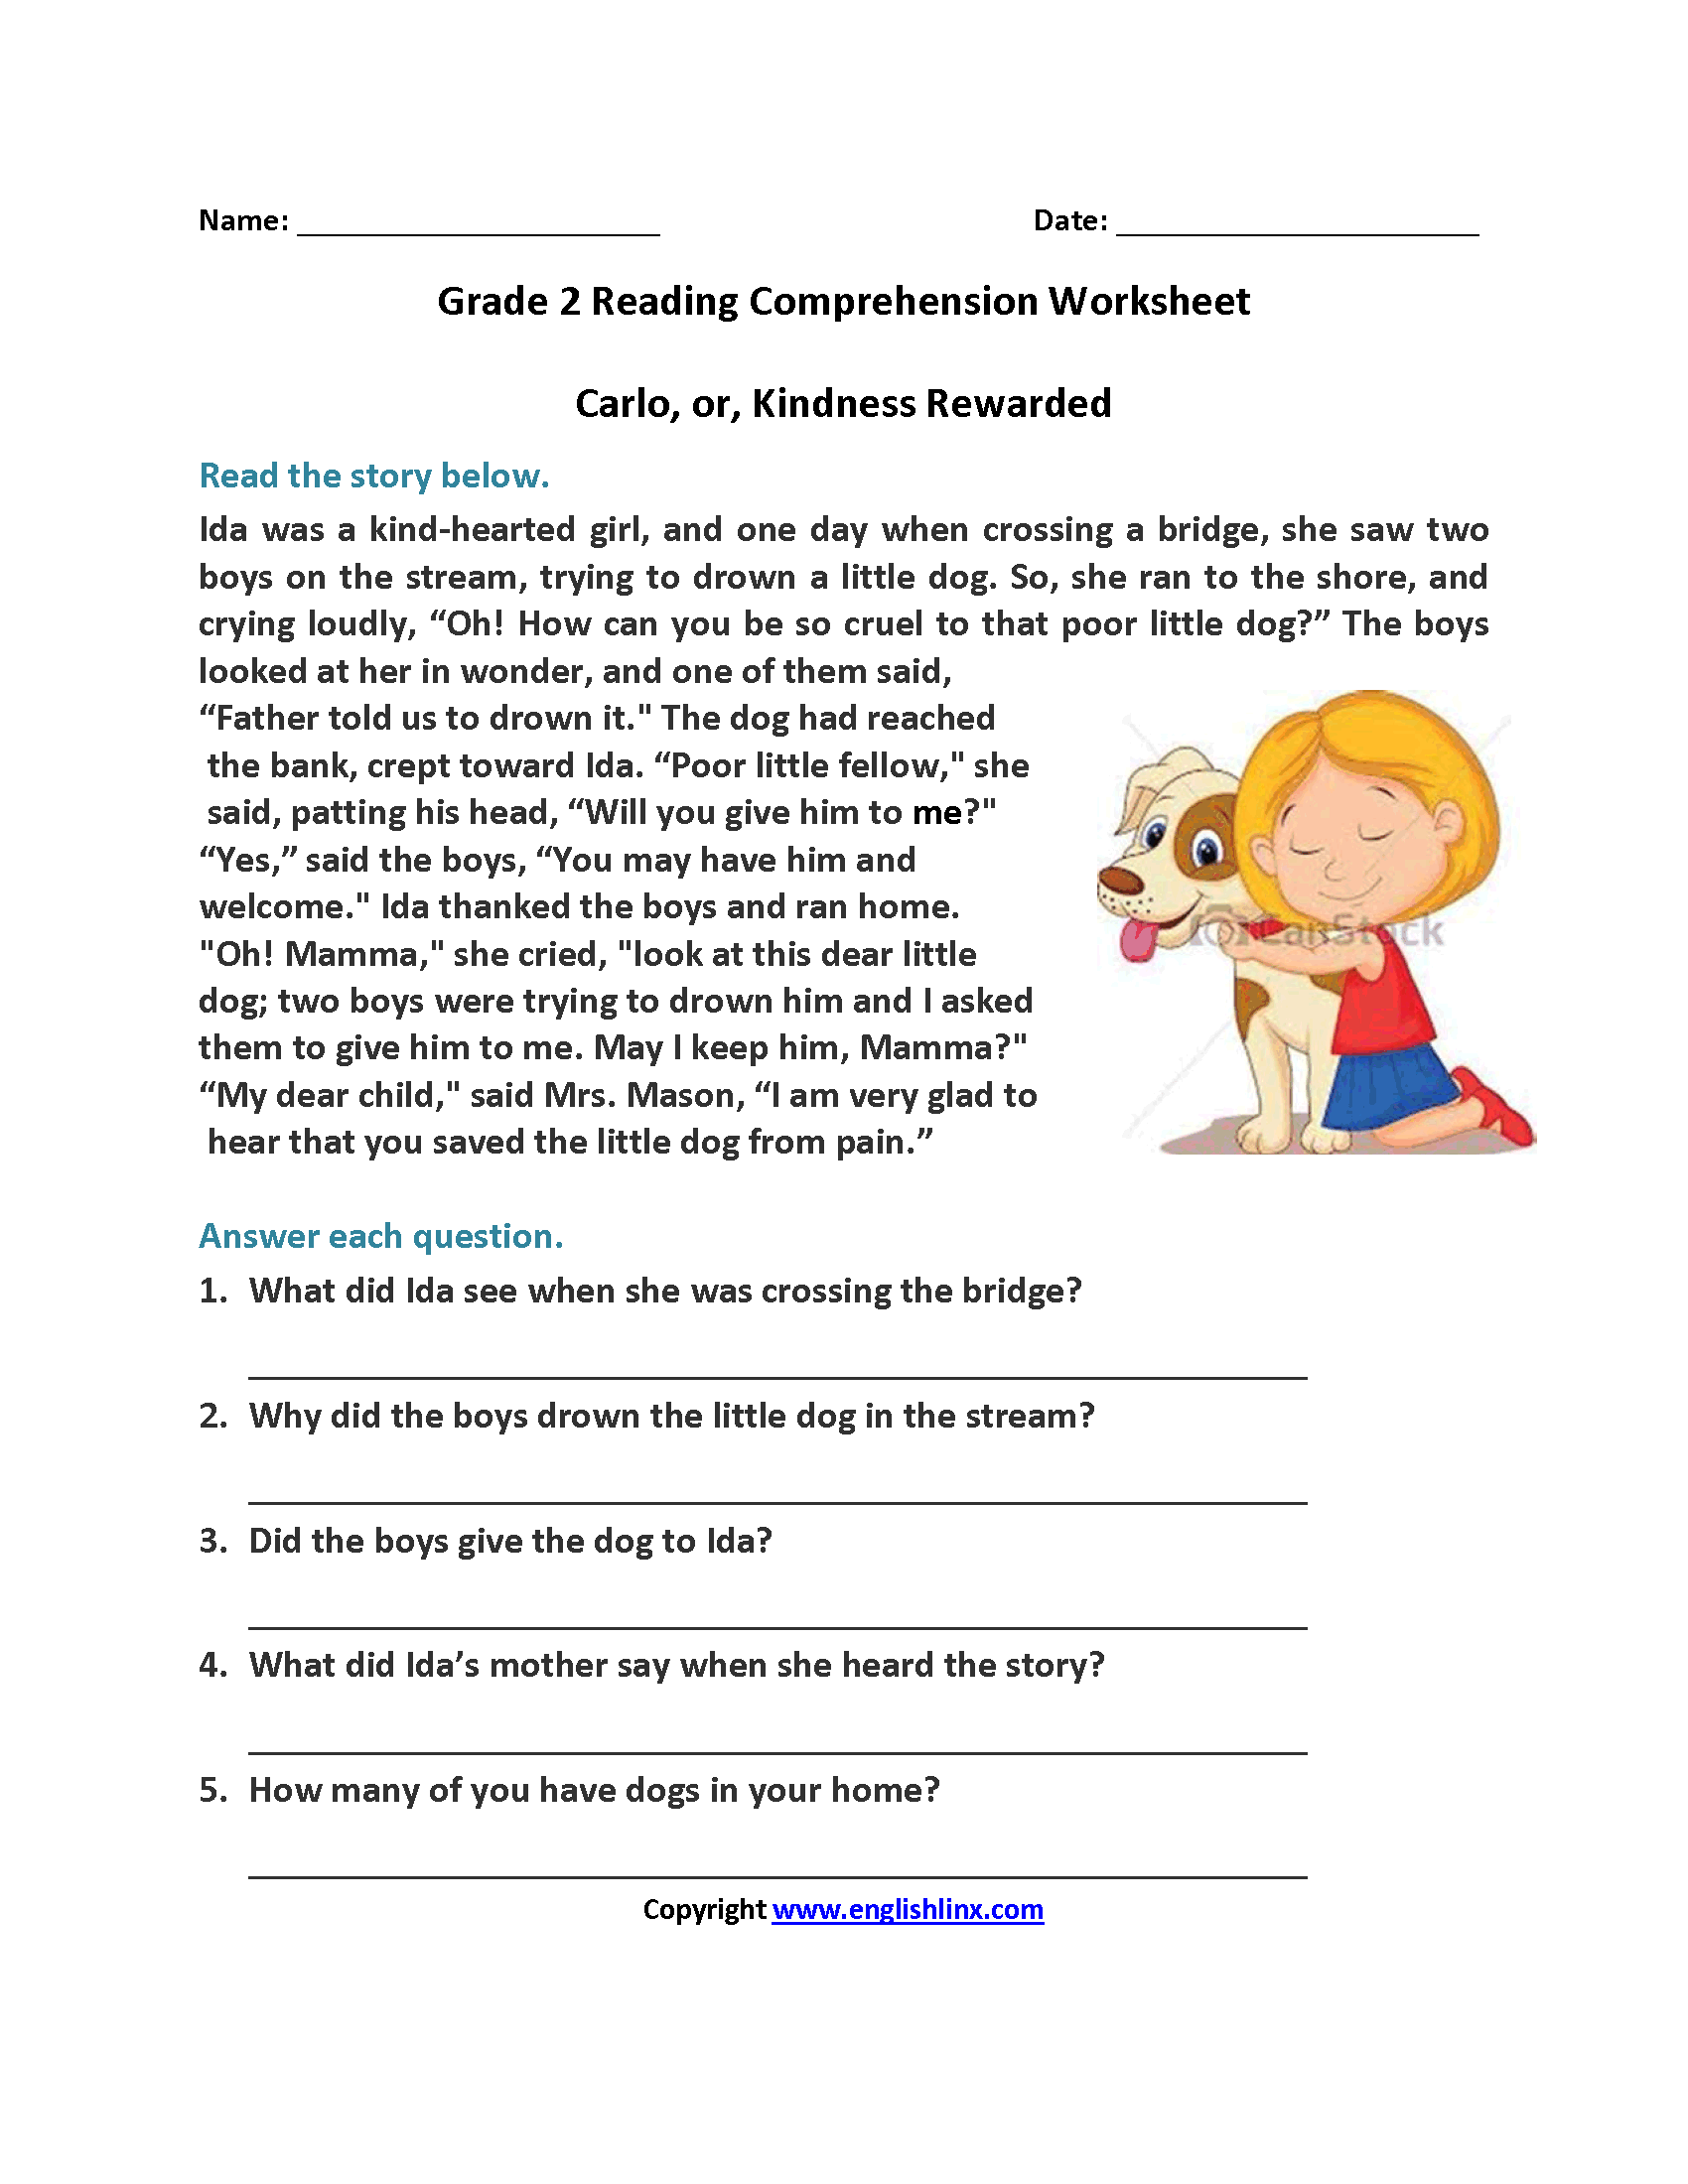 40+ 2nd grade reading worksheets printable free Top